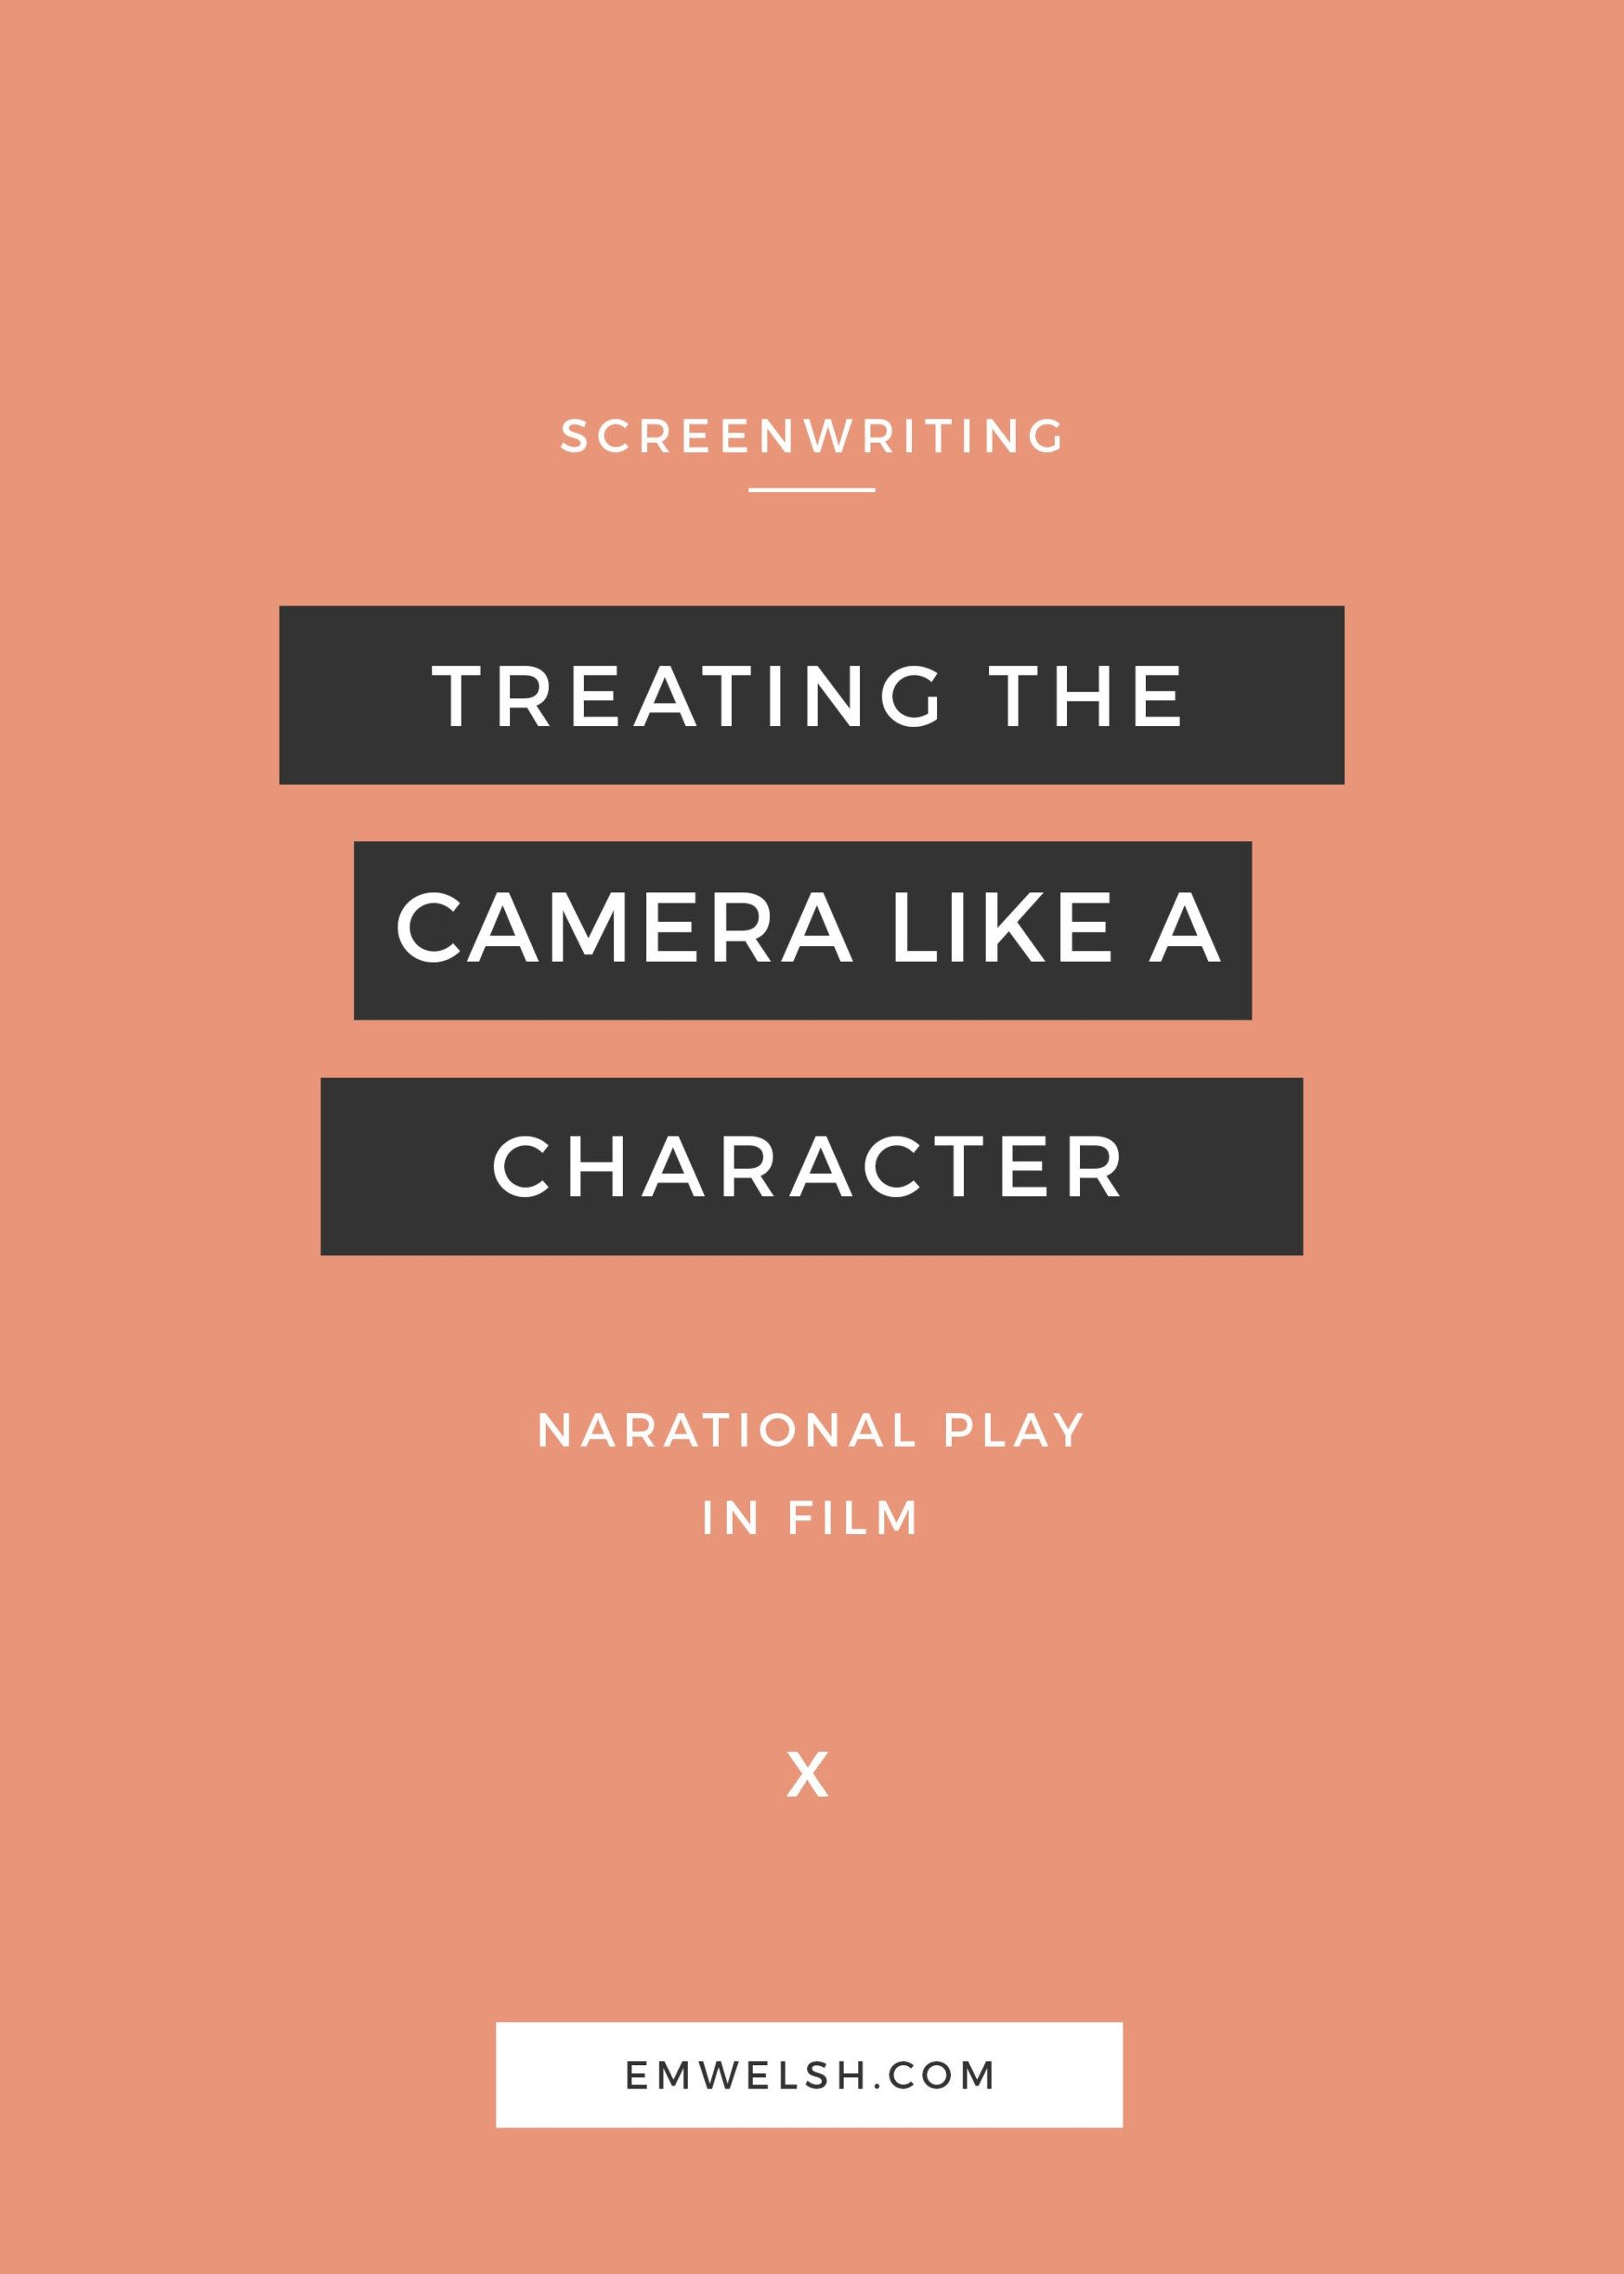 How to Treat the Camera like a Character MoV